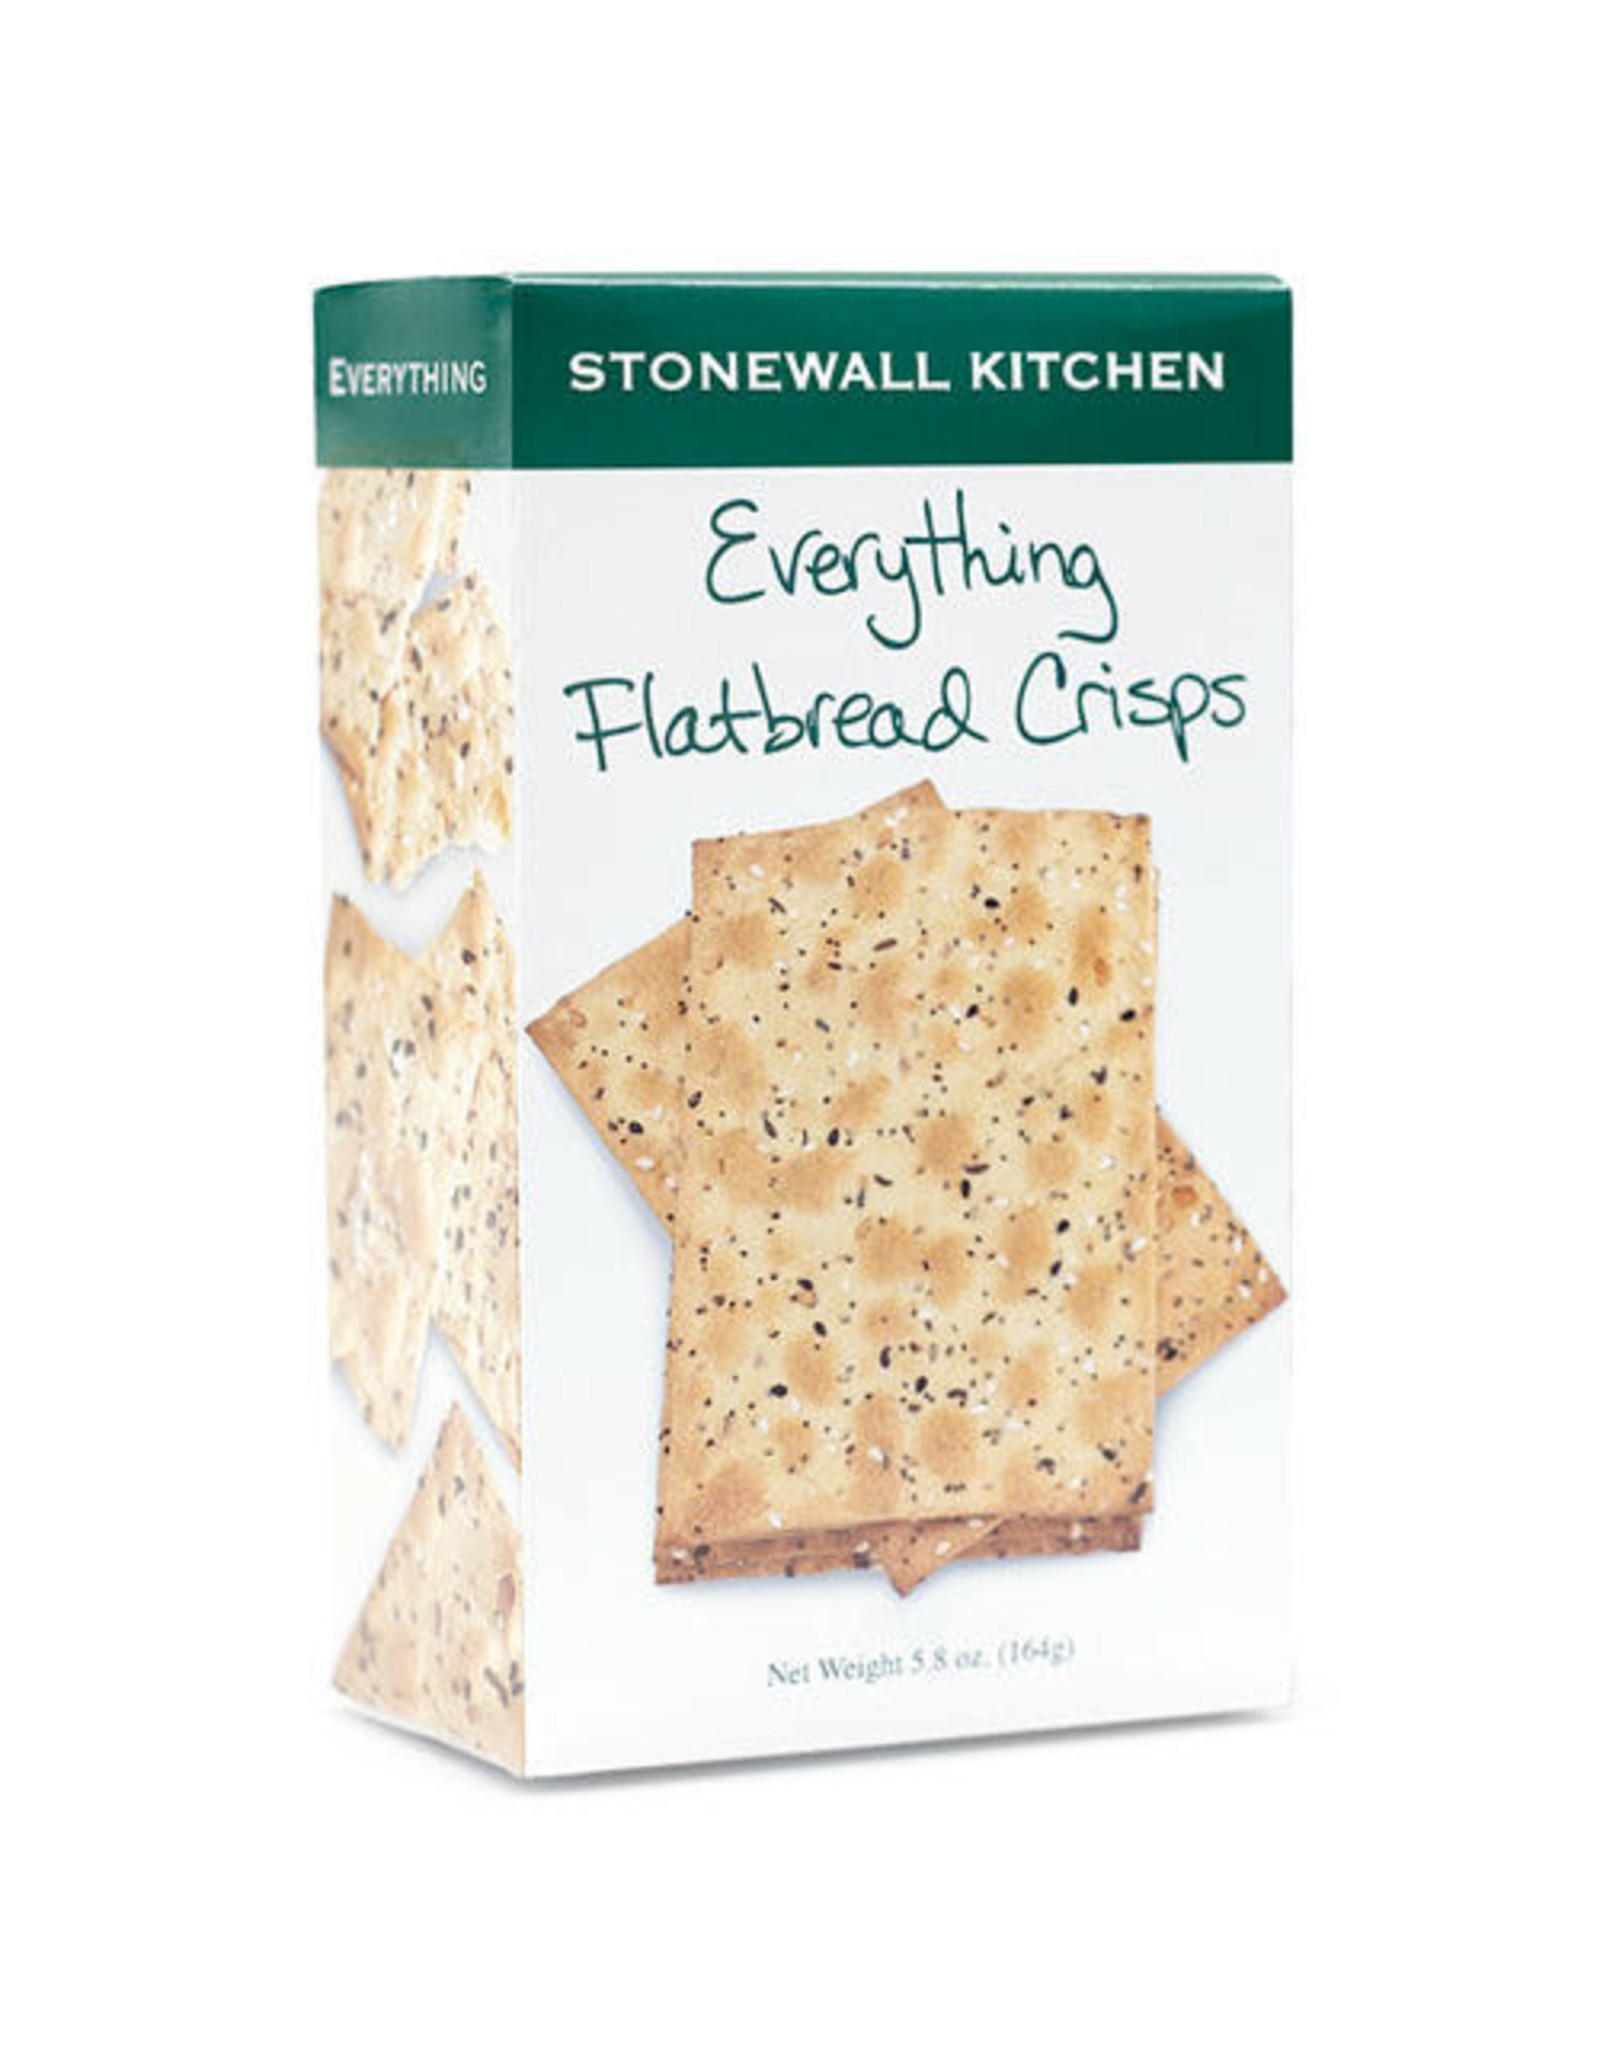 Stonewall Kitchen EVERYTHING FLATBREAD CRISPS